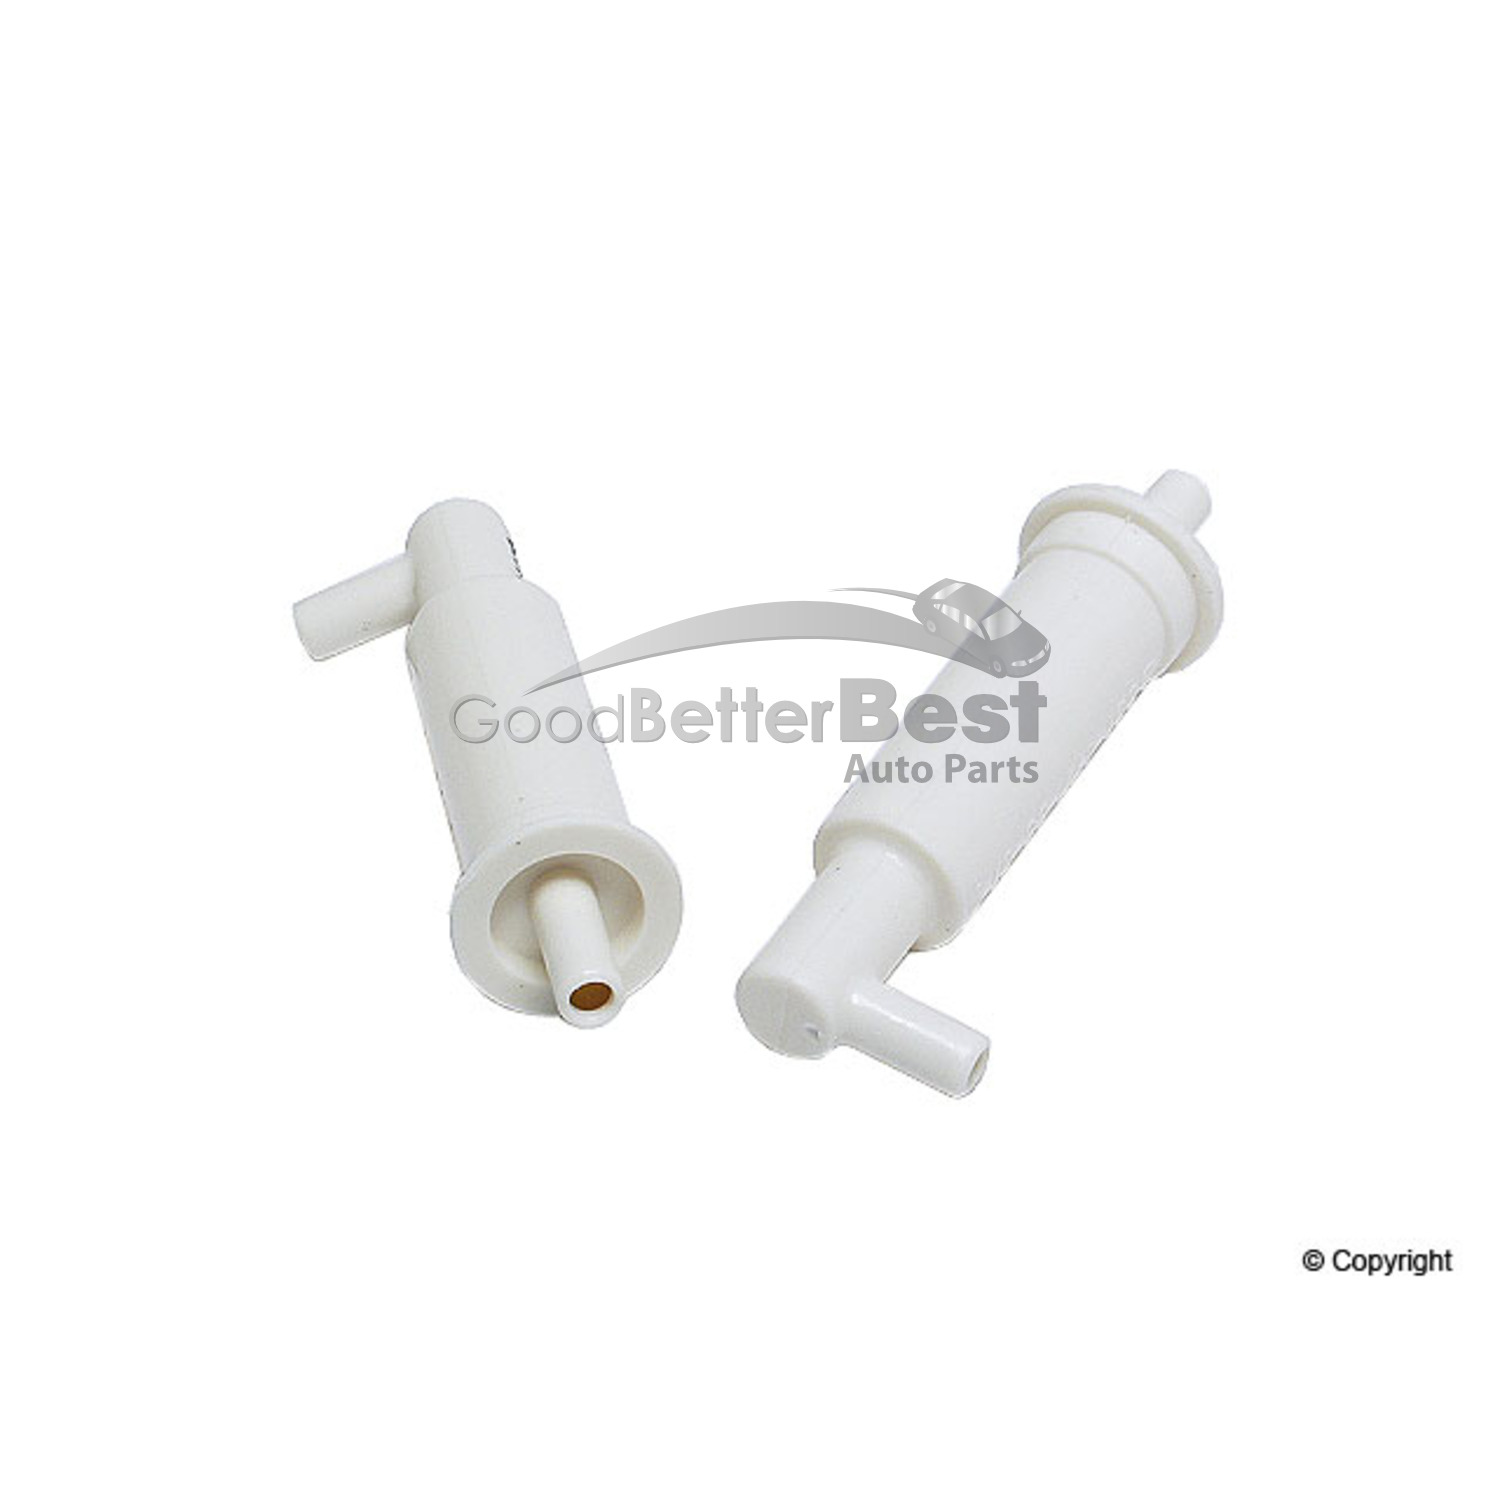 hight resolution of details about one new genuine fuel filter 0014776601 for mercedes mb